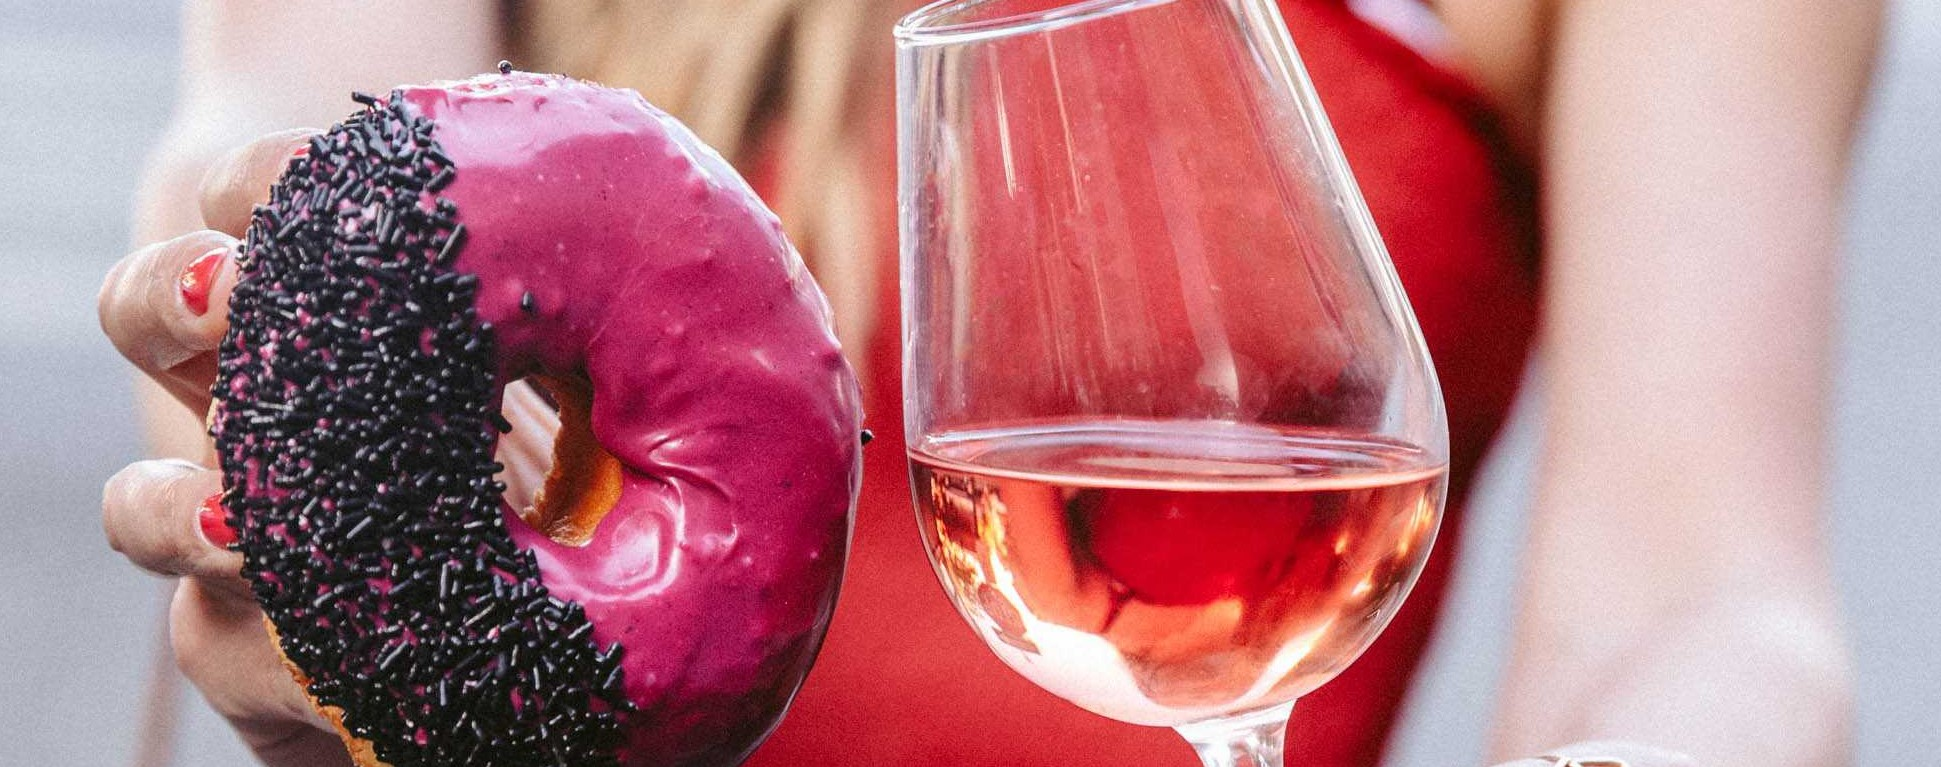 9 Tips to Take Instagrammable Wine Pictures